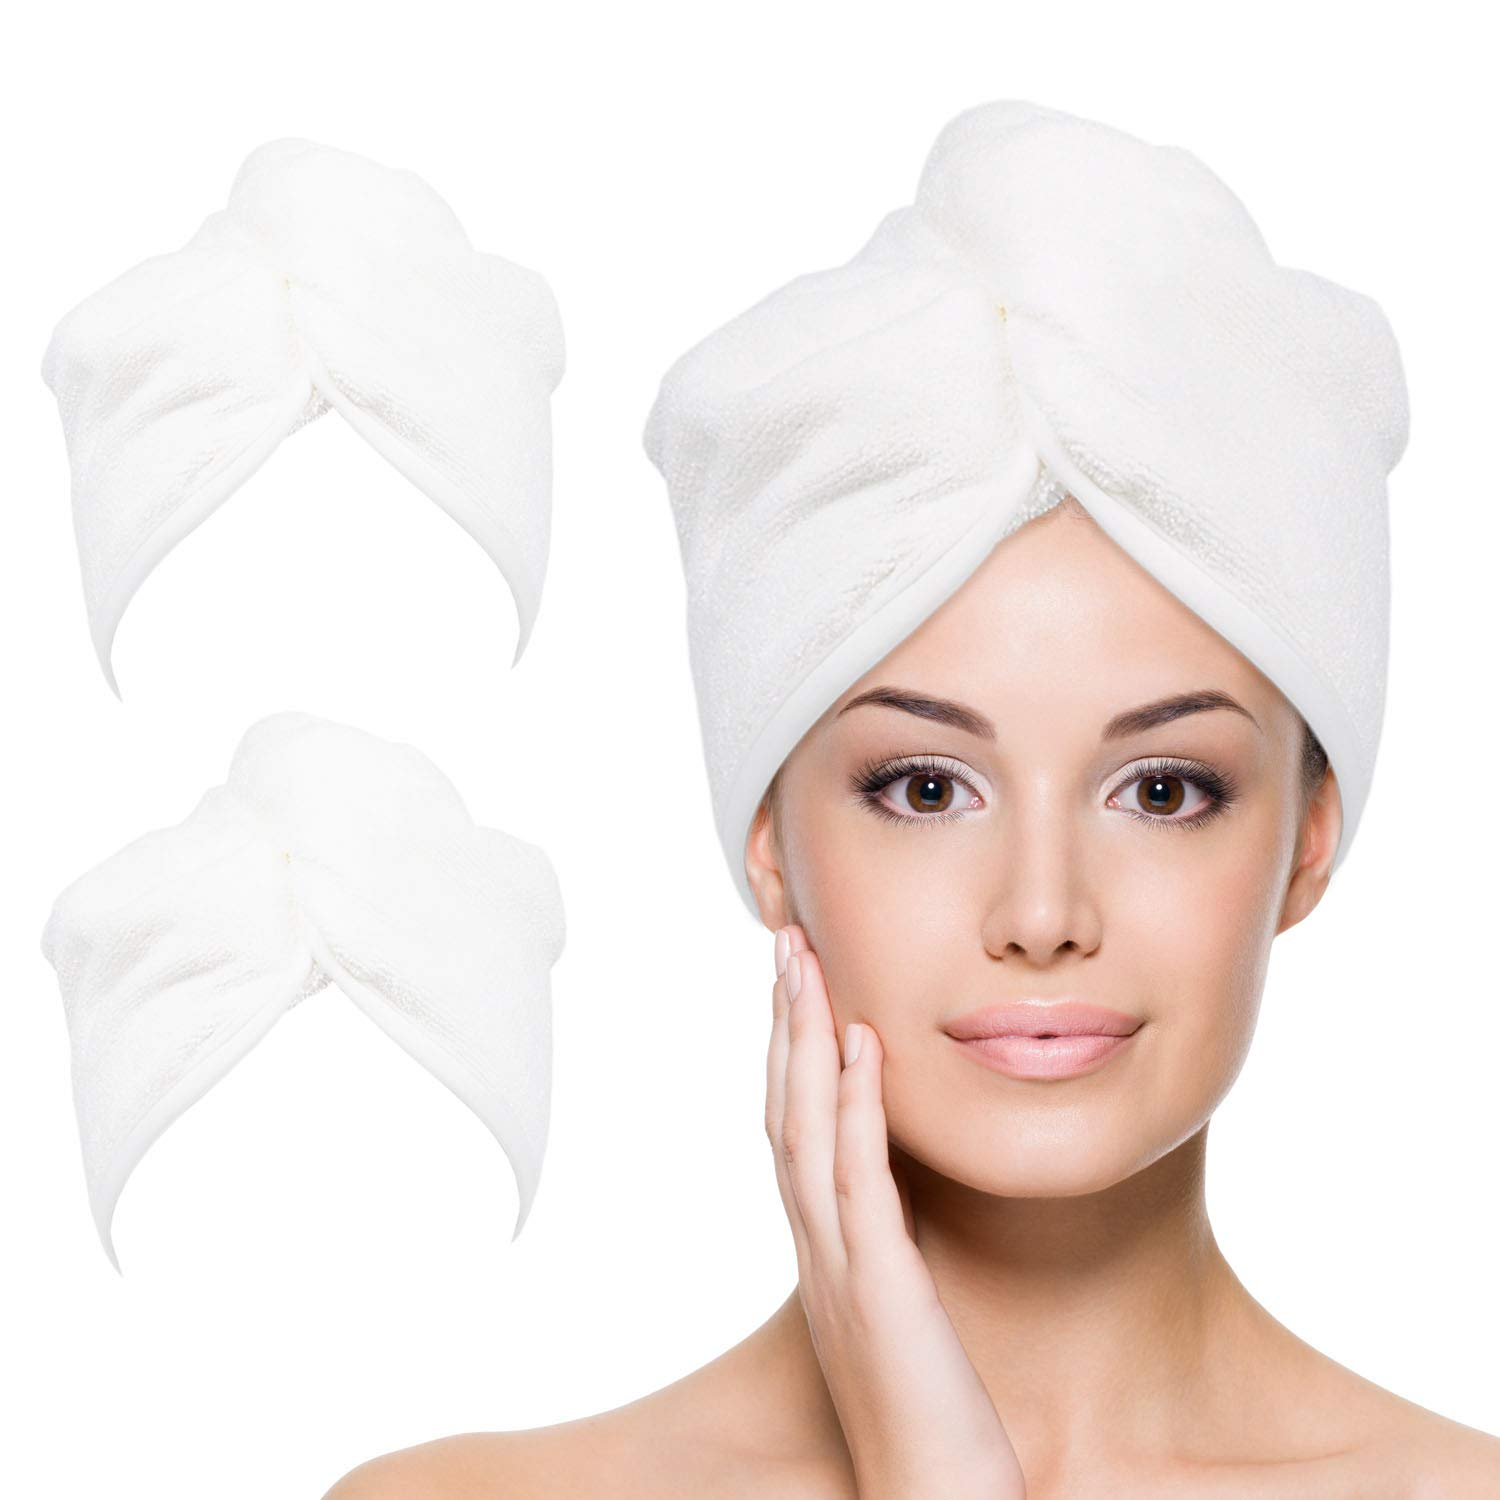 YoulerTex Microfiber Hair Towel Wrap for Women, 2 Pack 10 inch X 26 inch, Super Absorbent Quick Dry Hair Turban For Drying Curly, Long & Thick Hair (White)